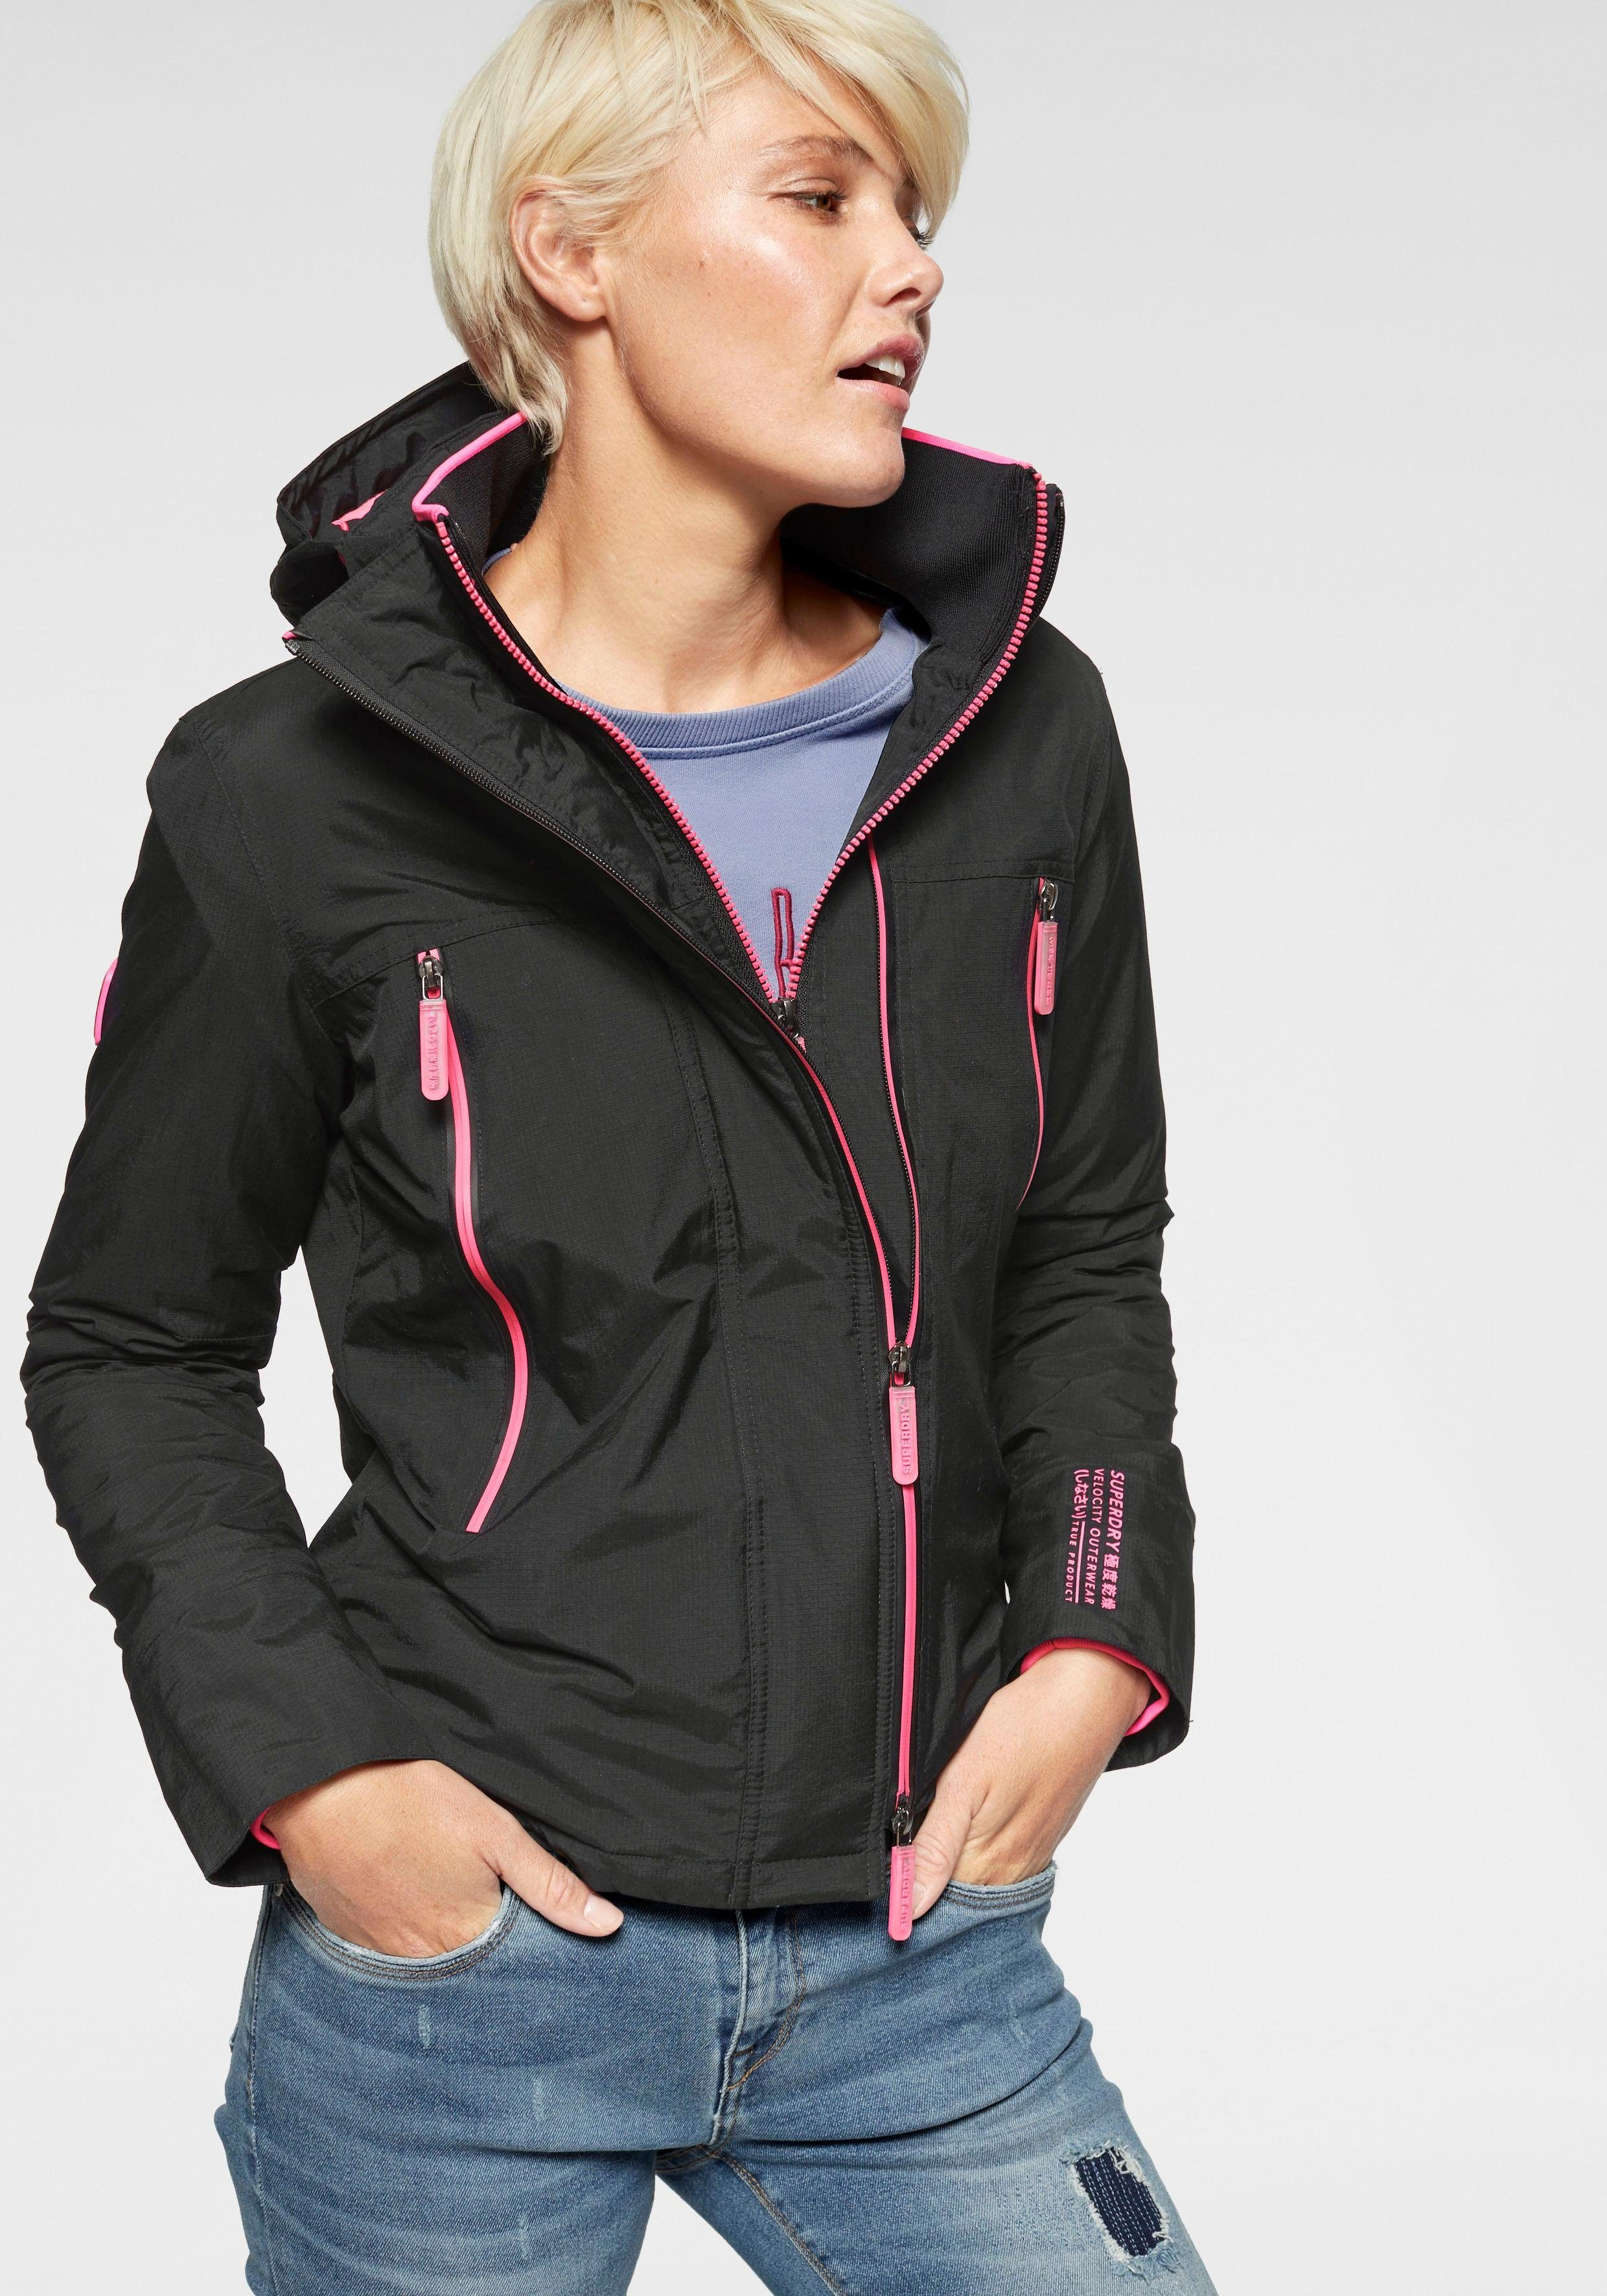 low priced 81436 d3ab6 otto superdry jacke